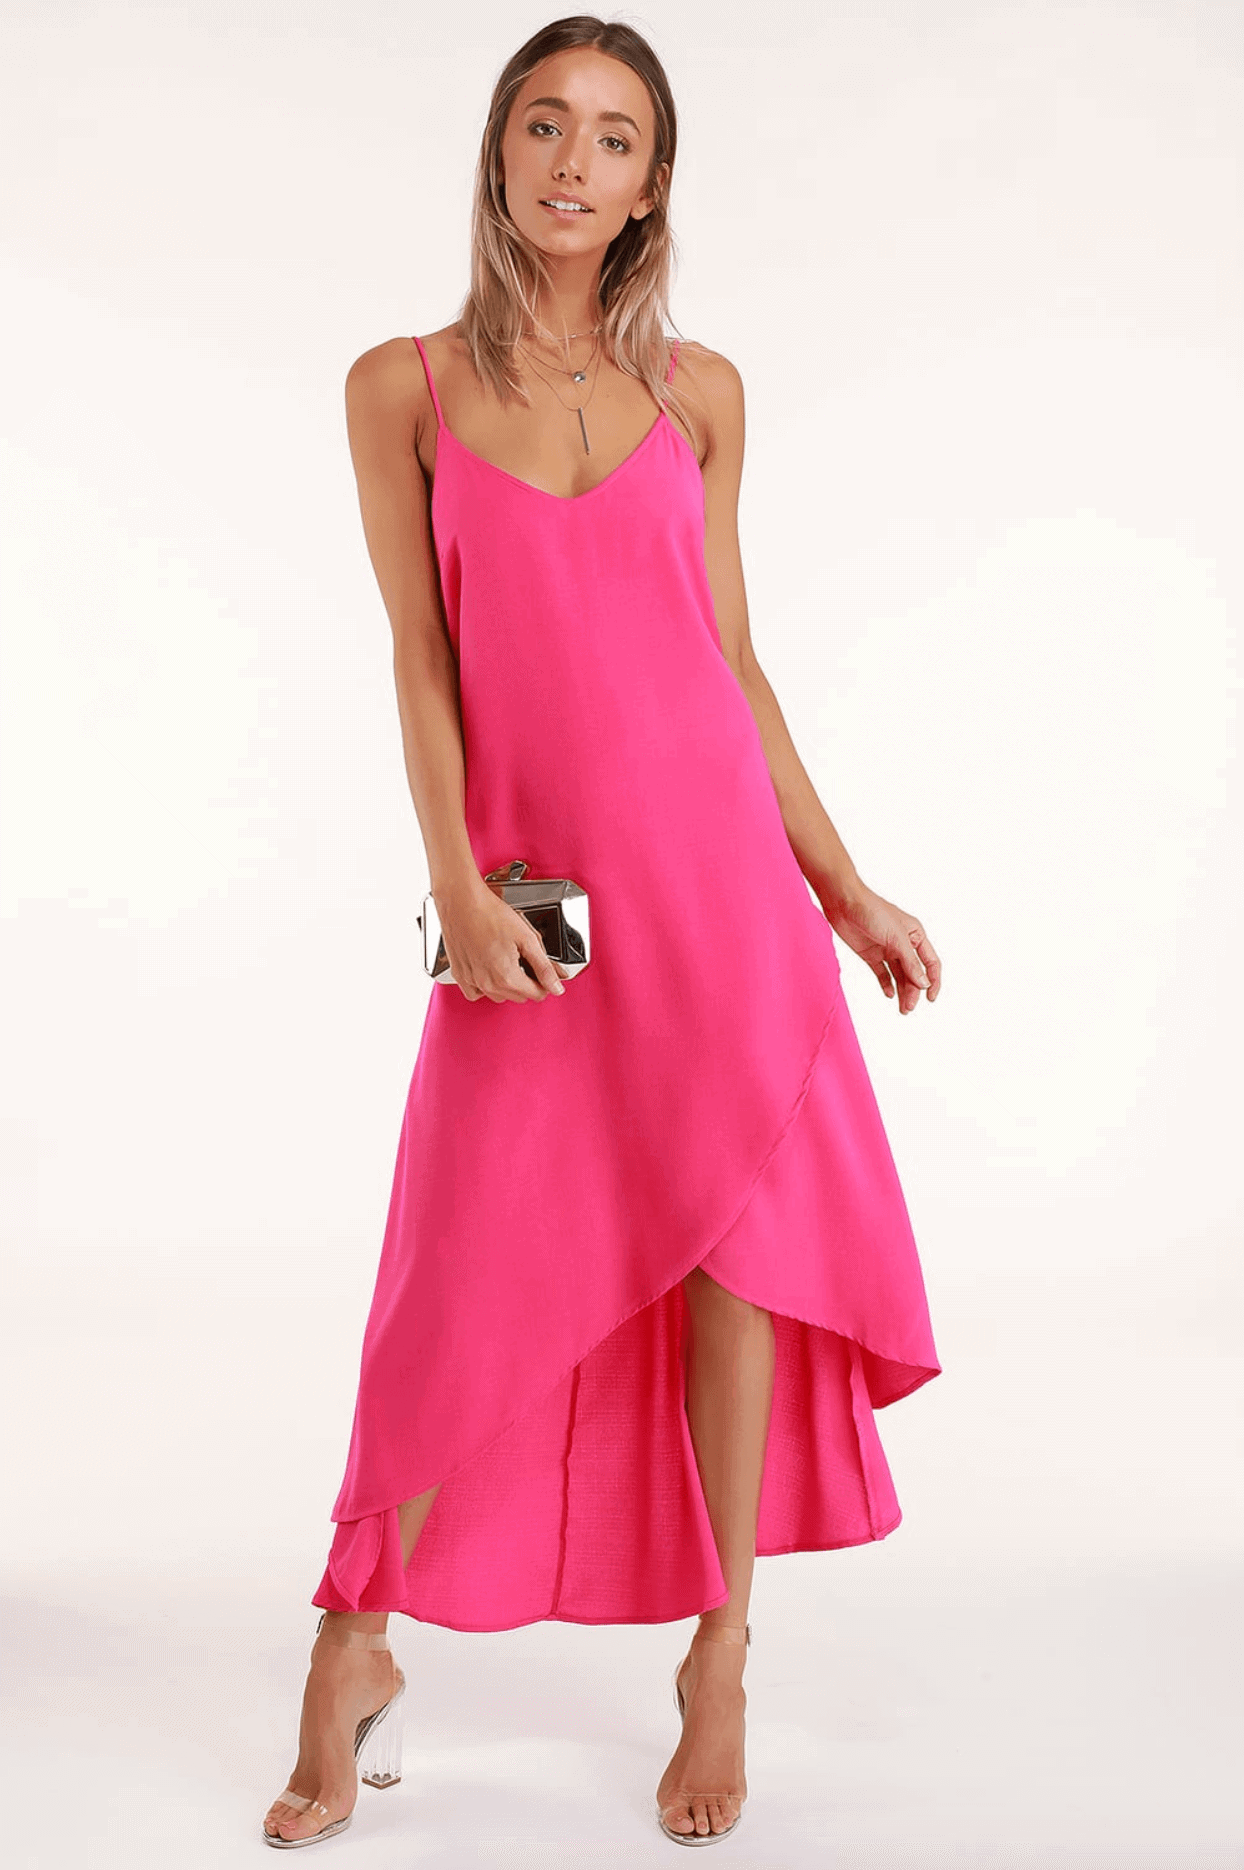 Wedding Guest Outfits Bright Pink Maxi Dress What to Wear to a Wedding as a Guest